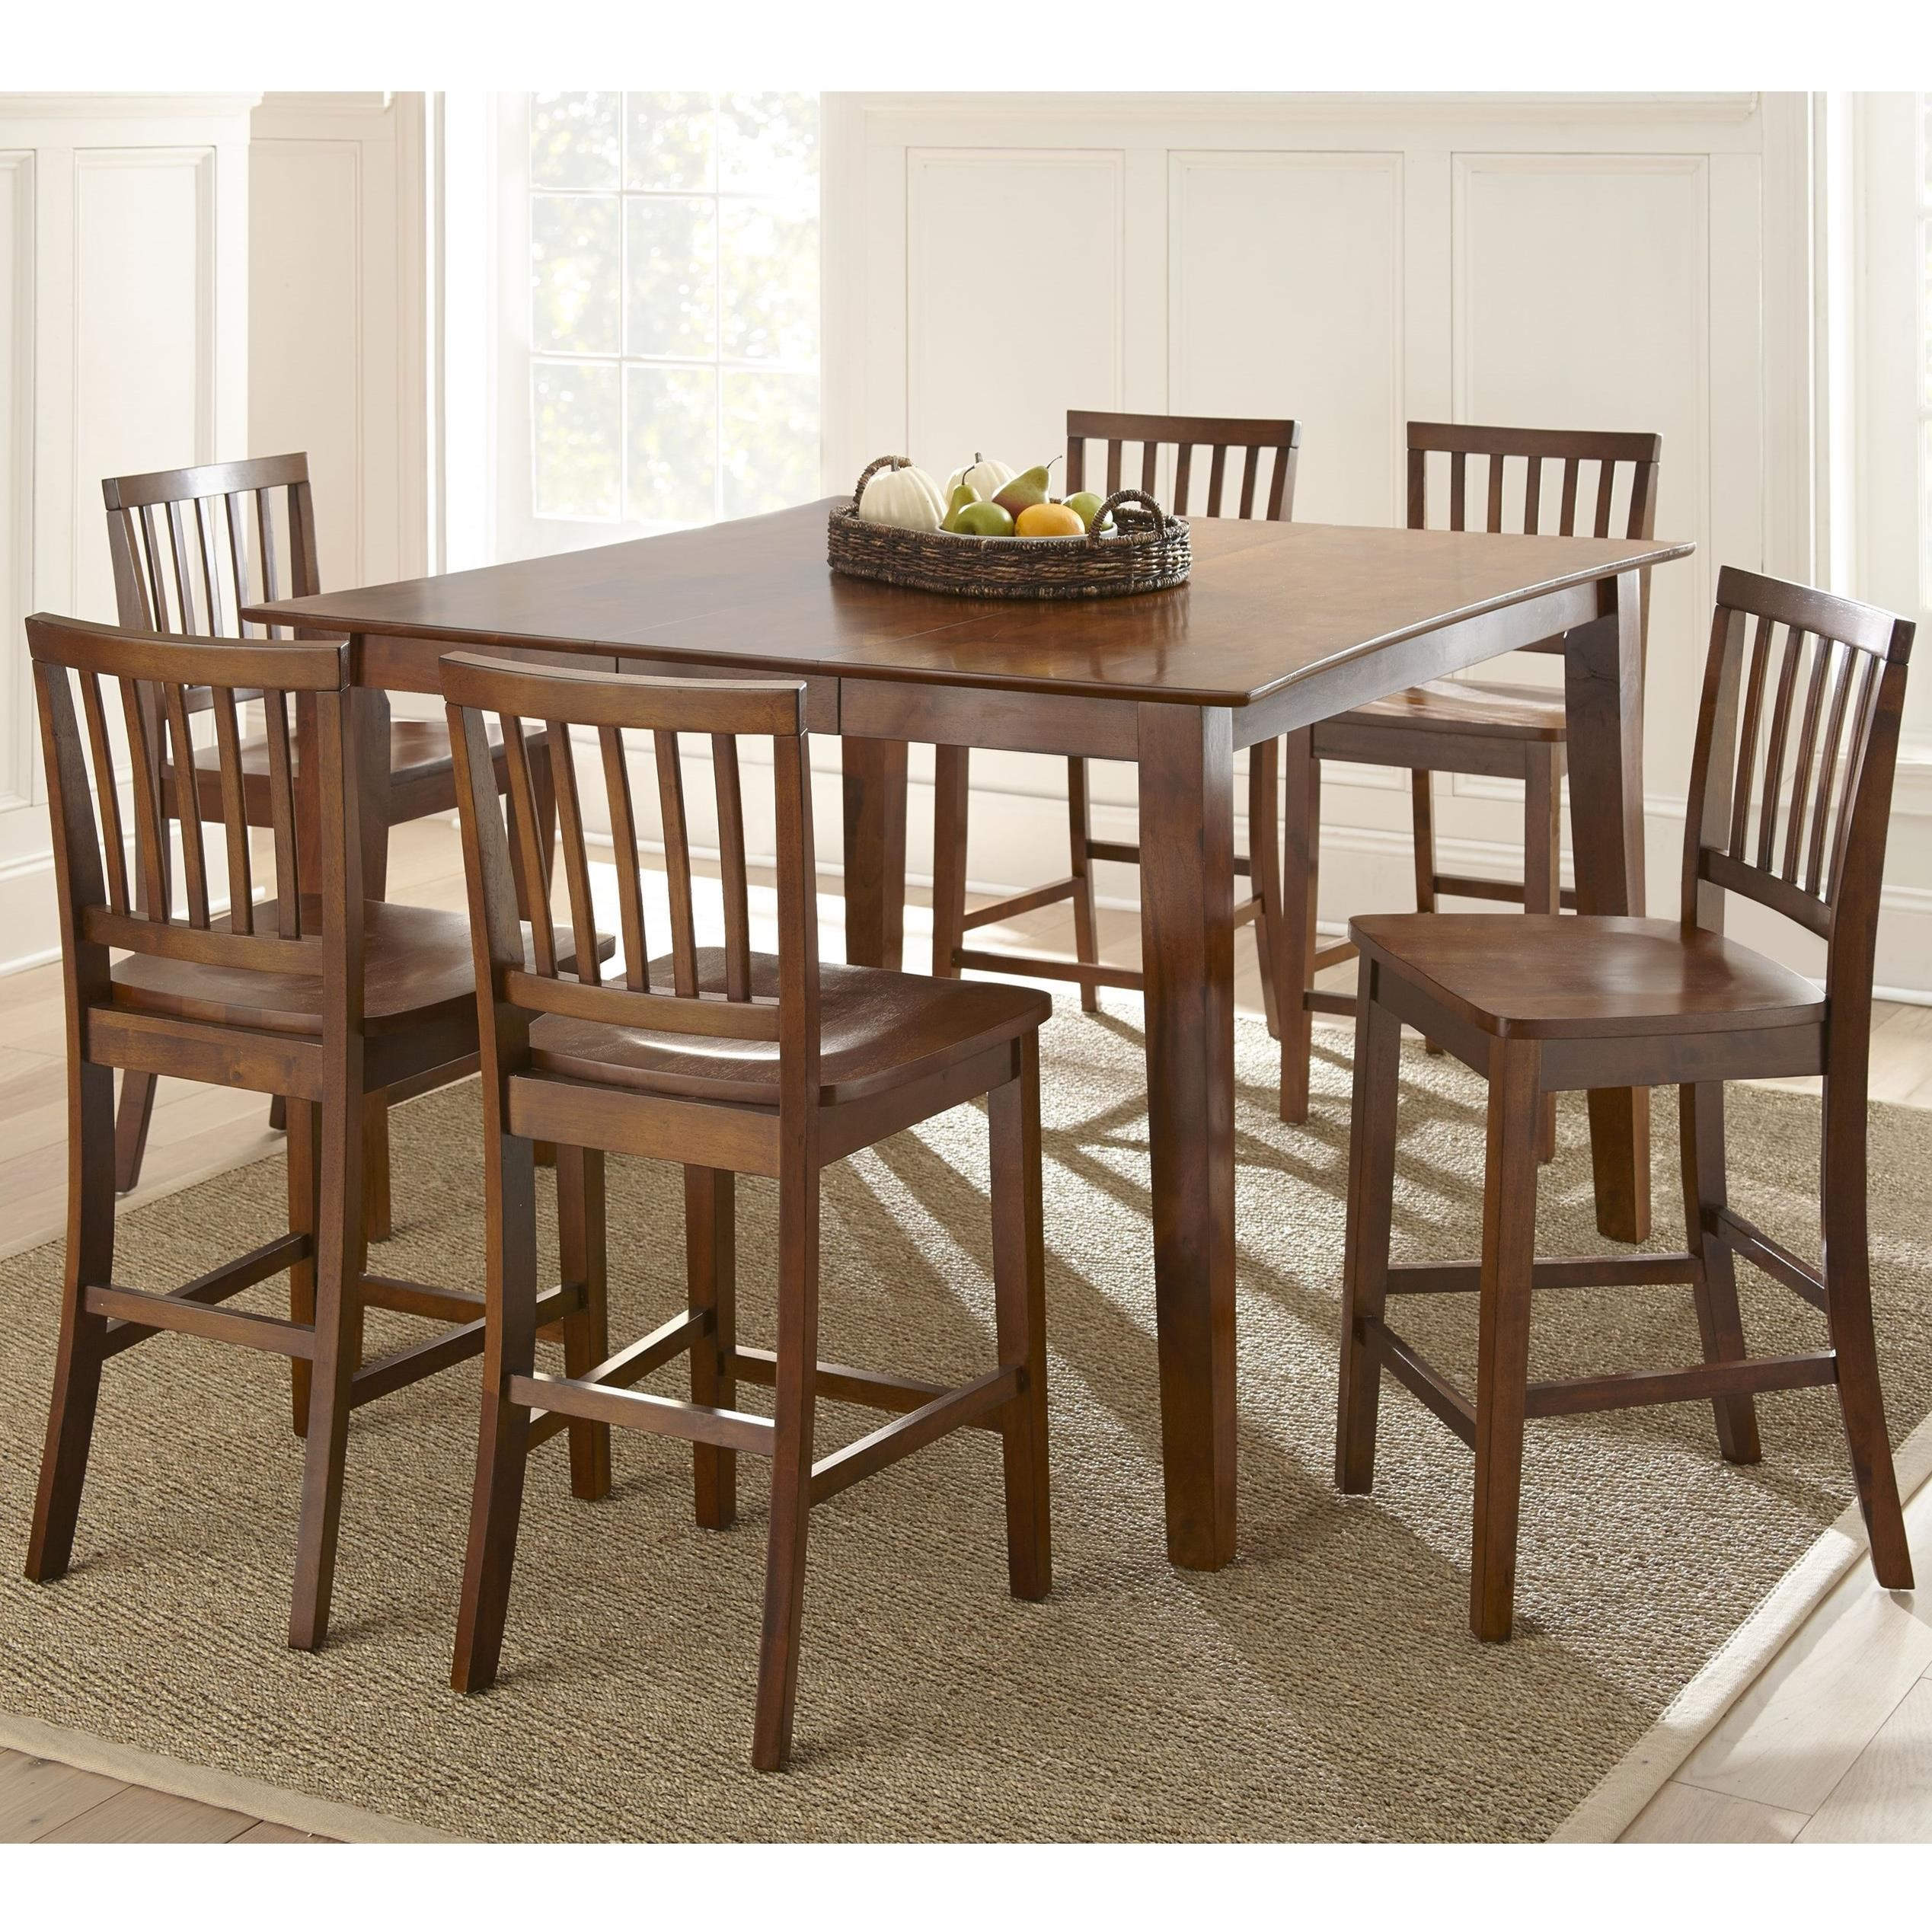 Steve silver branson 7 piece counter height dining set for Counter height dining set